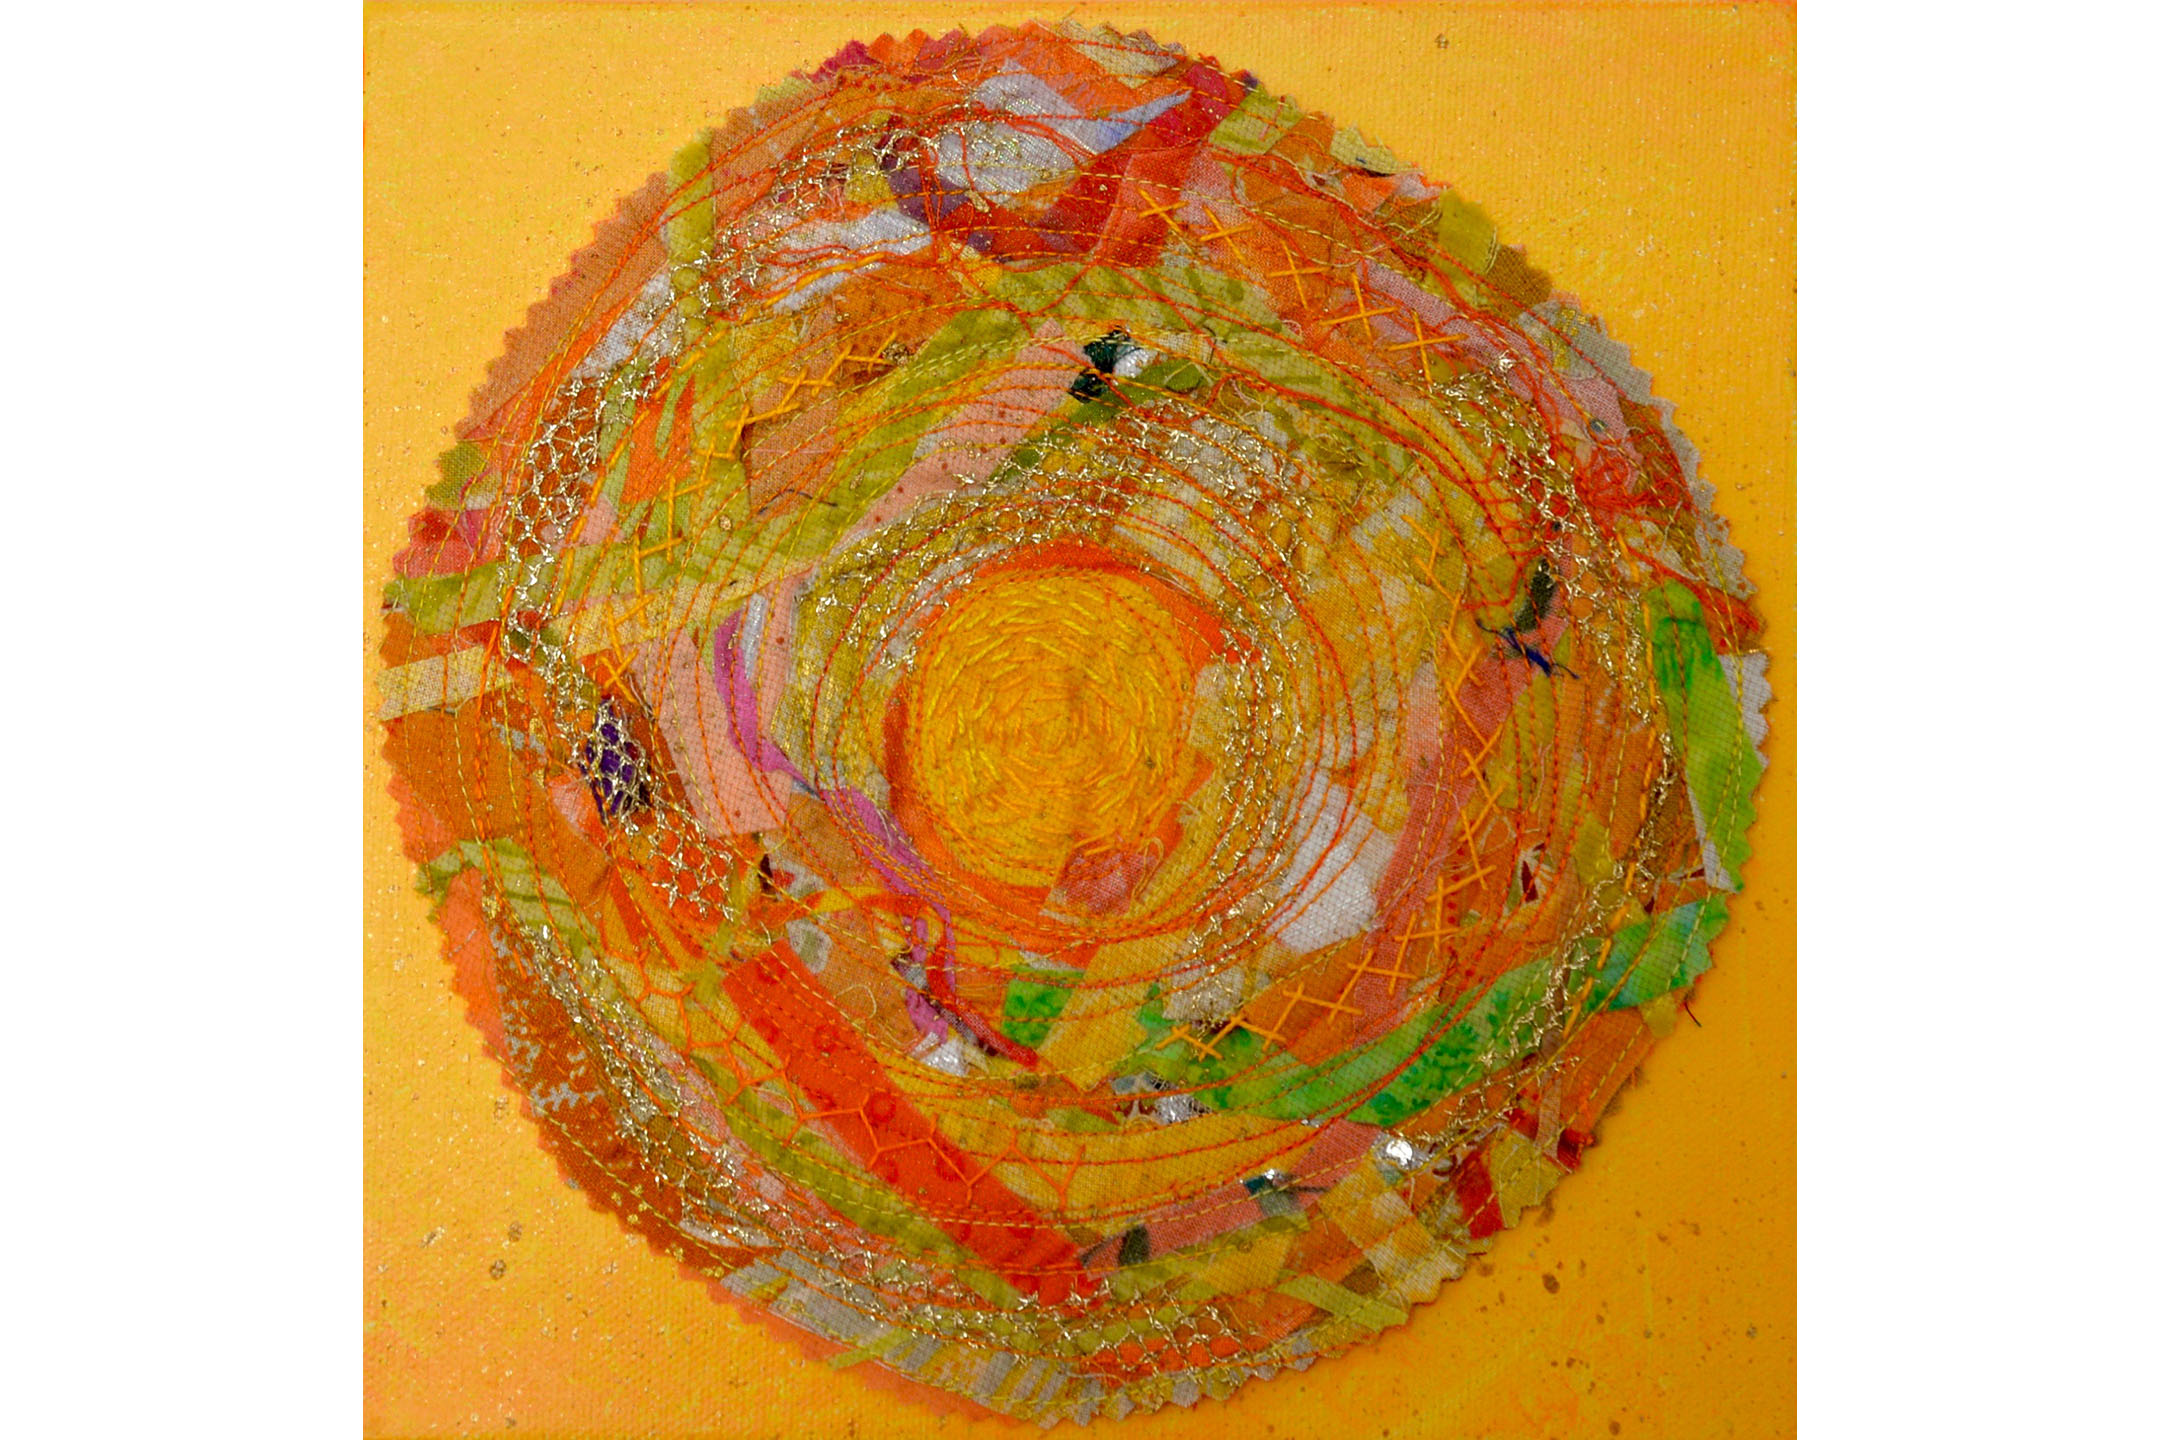 """Diane Rode Schneck, Here Comes the Sun, Mixed media on canvas, 8"""" x 8"""", 2016"""